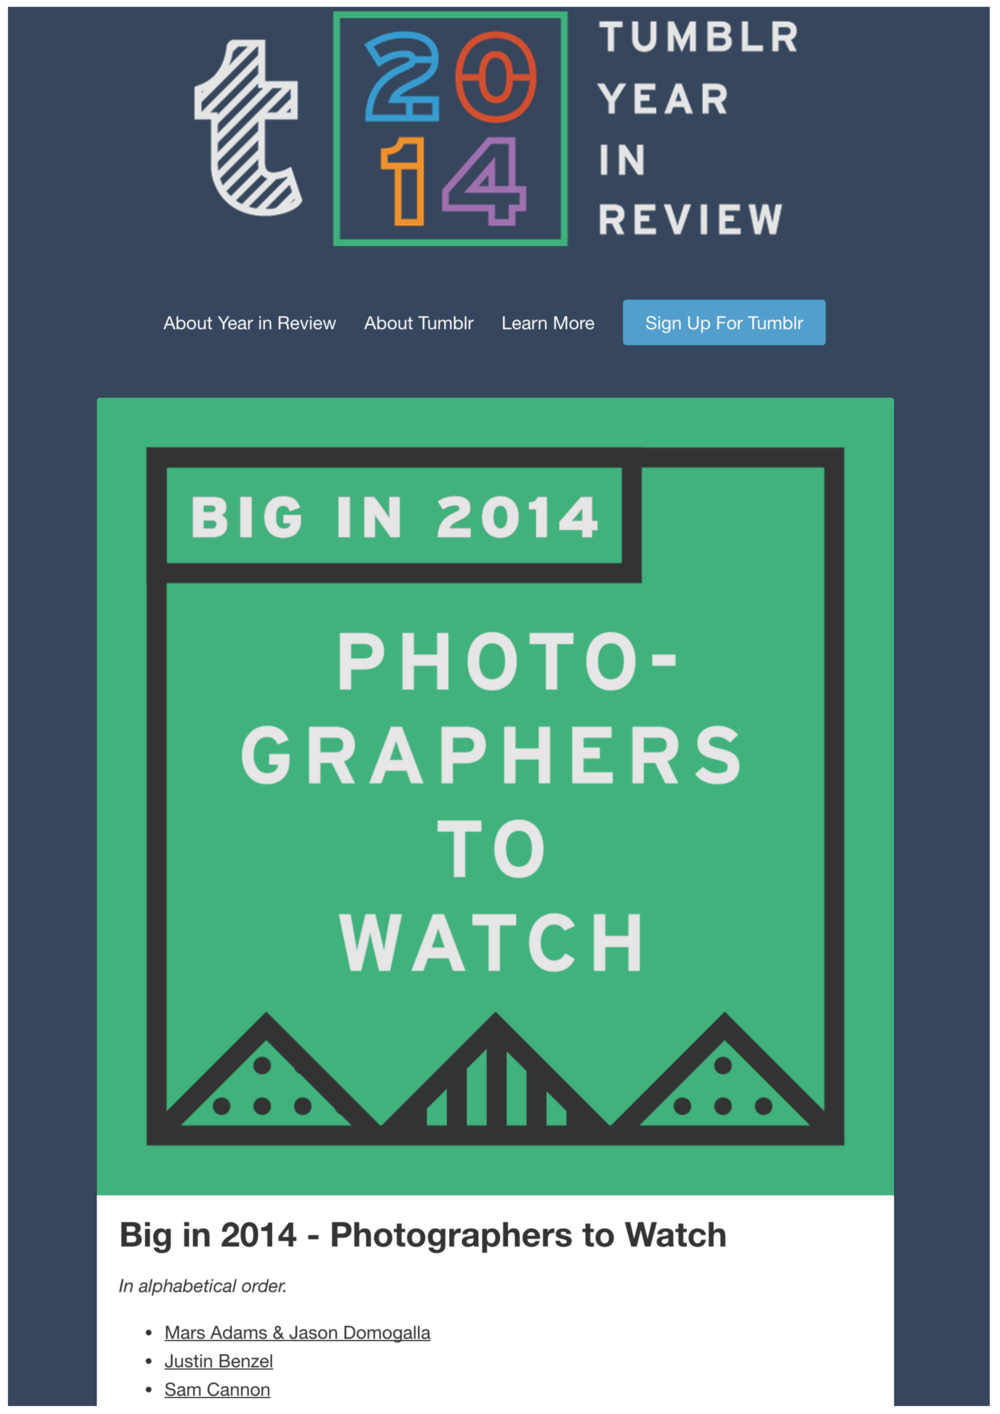 Sam Cannon named on of the top Photographers to Watch in 2014 by Tumblr